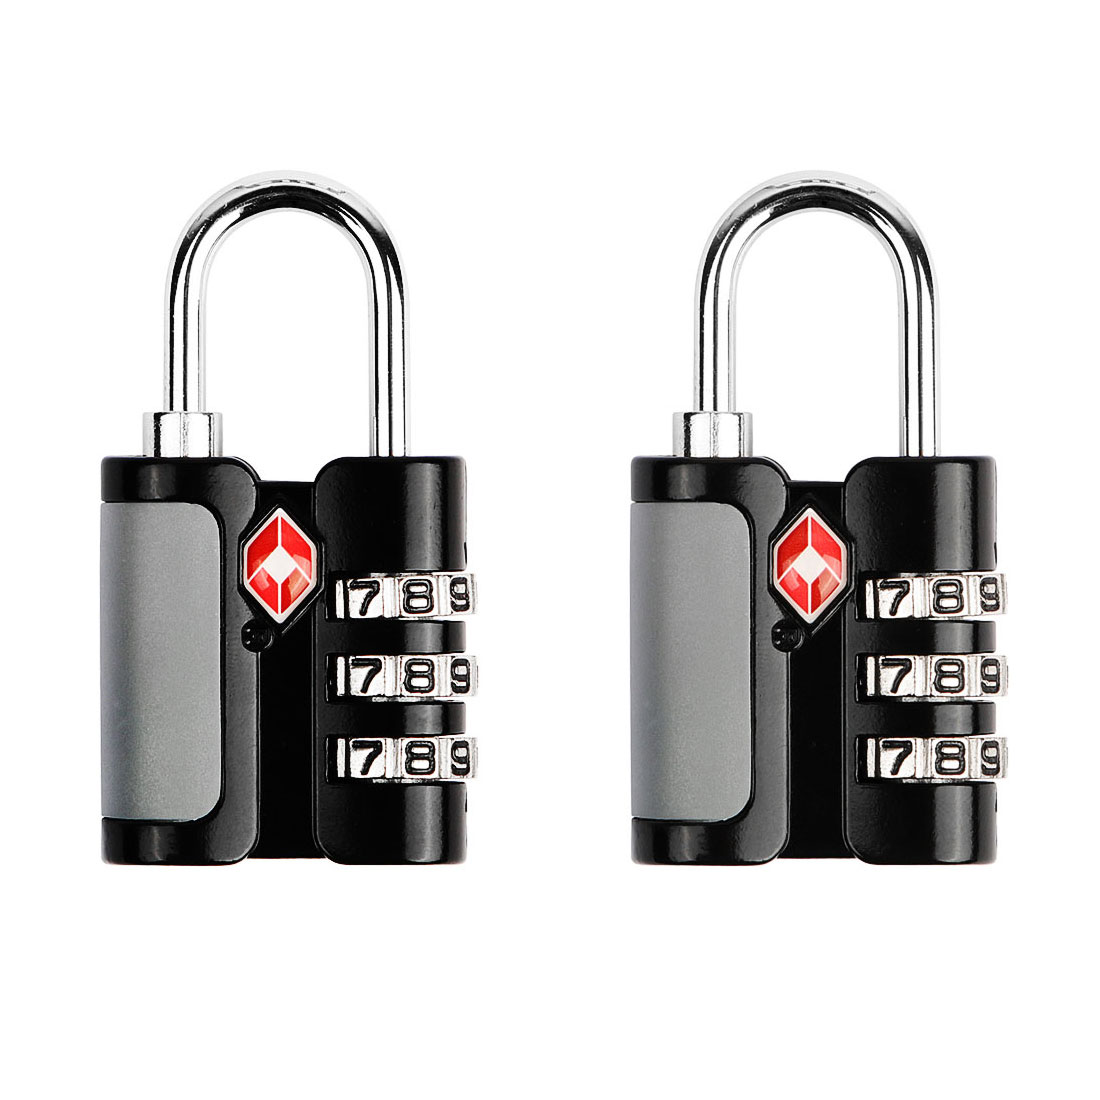 TSA Approved 3-Dial Luggage Locks Combination Padlock Travel Suitcase Security